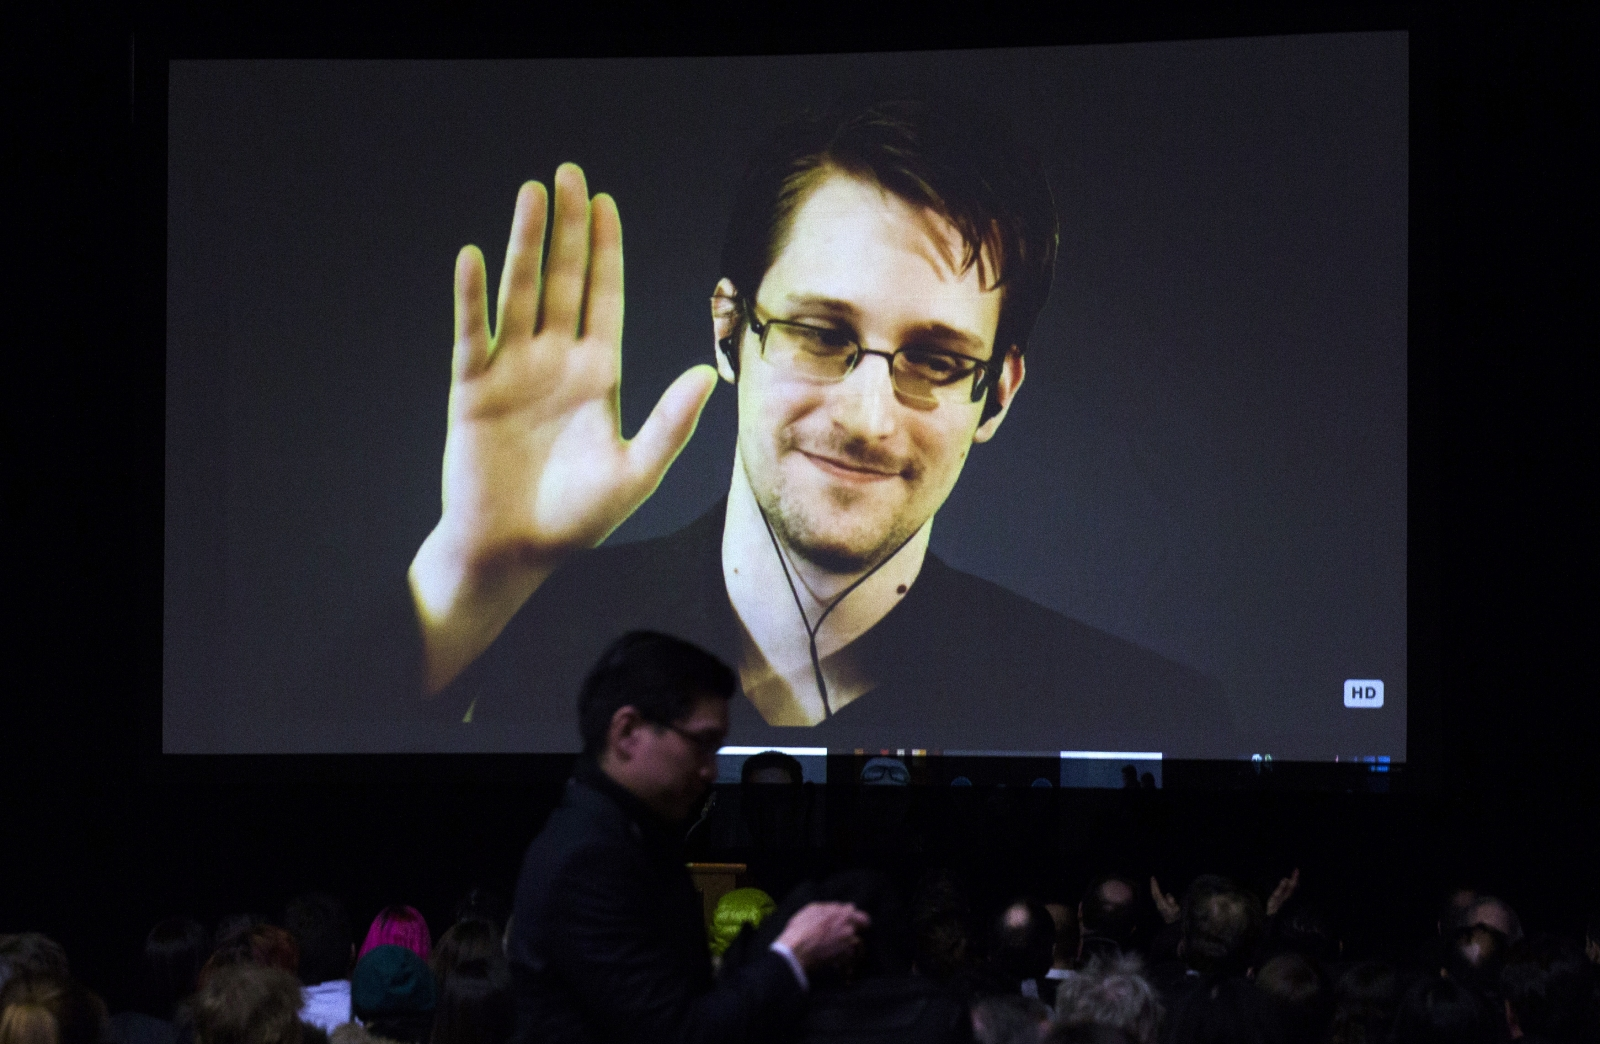 Whistleblower Edward Snowden sparked curiosity with cryptic Tweet - 'It's time'